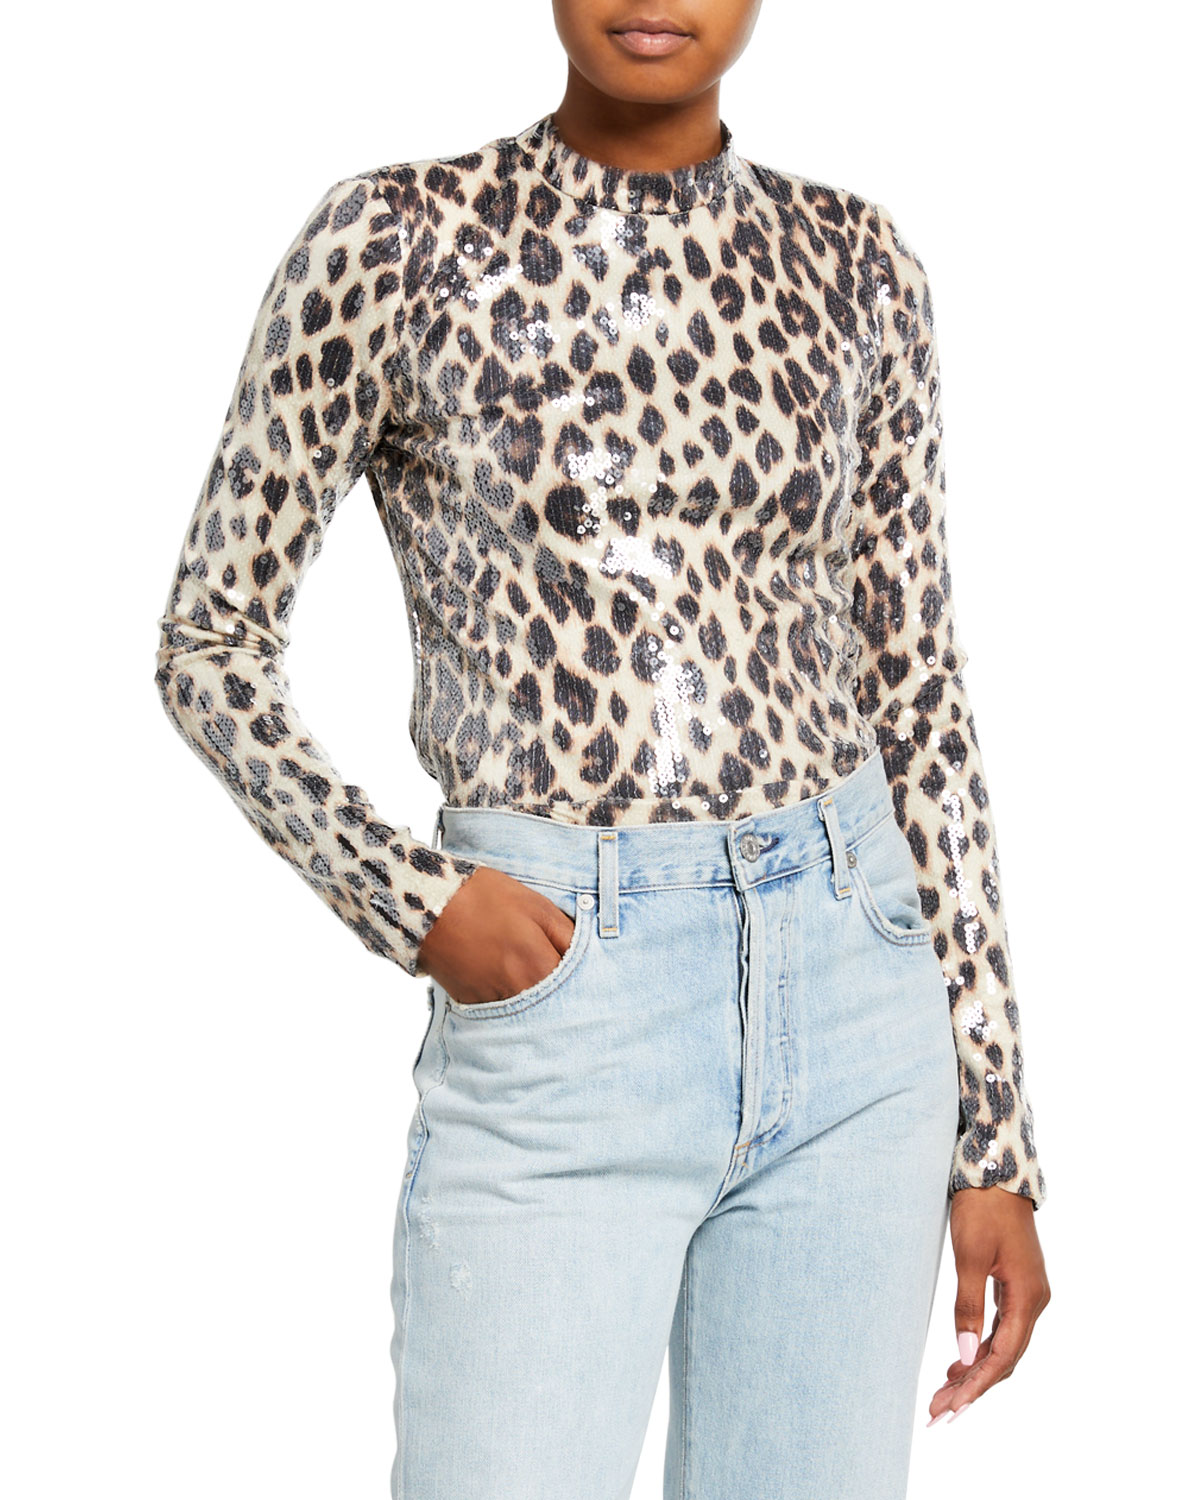 A.l.c Tops MARSHALL SEQUINED LEOPARD-PRINT TOP